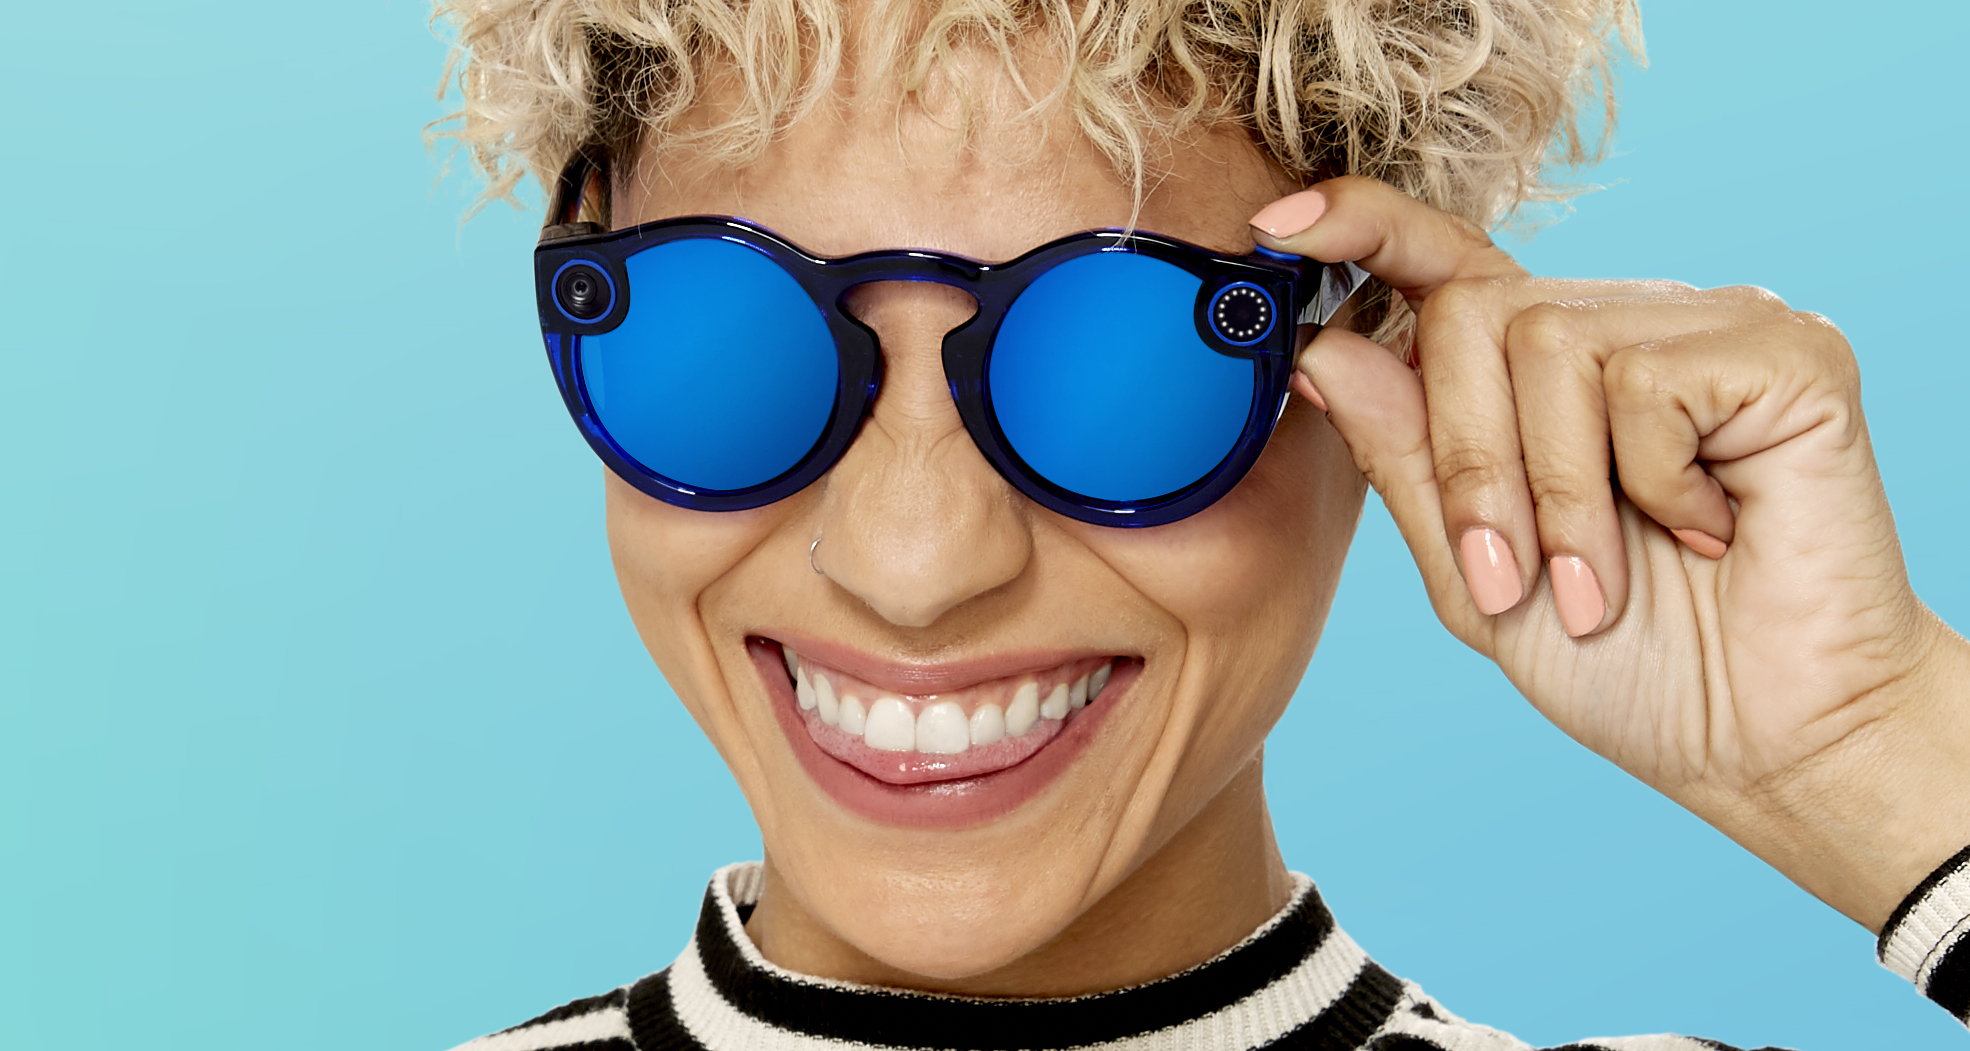 Service Snapchat introduced the second generation glasses Spectacles with camera